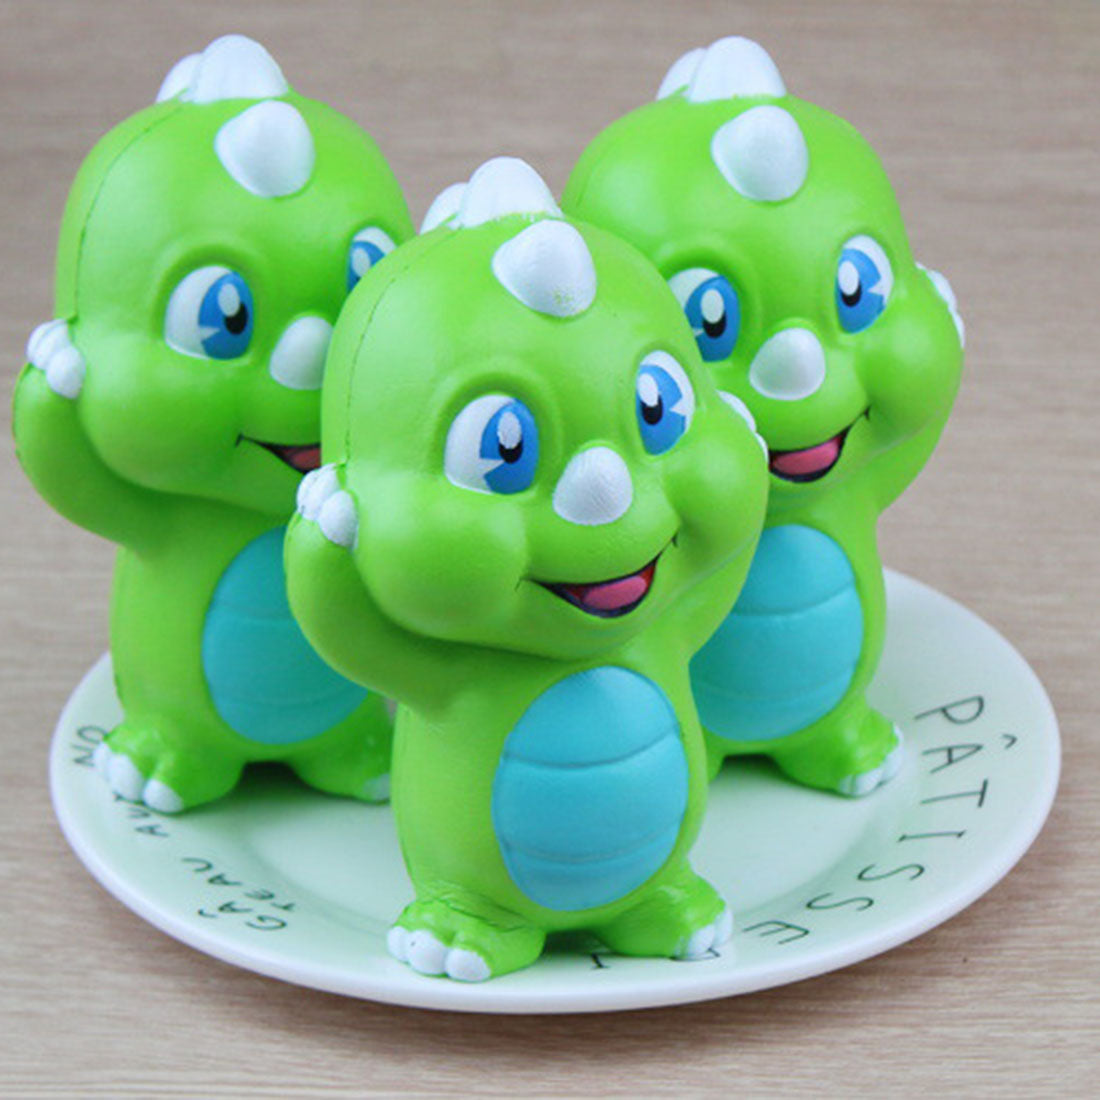 Jumbo Kawaii Green Dinosaur Baby Squishy